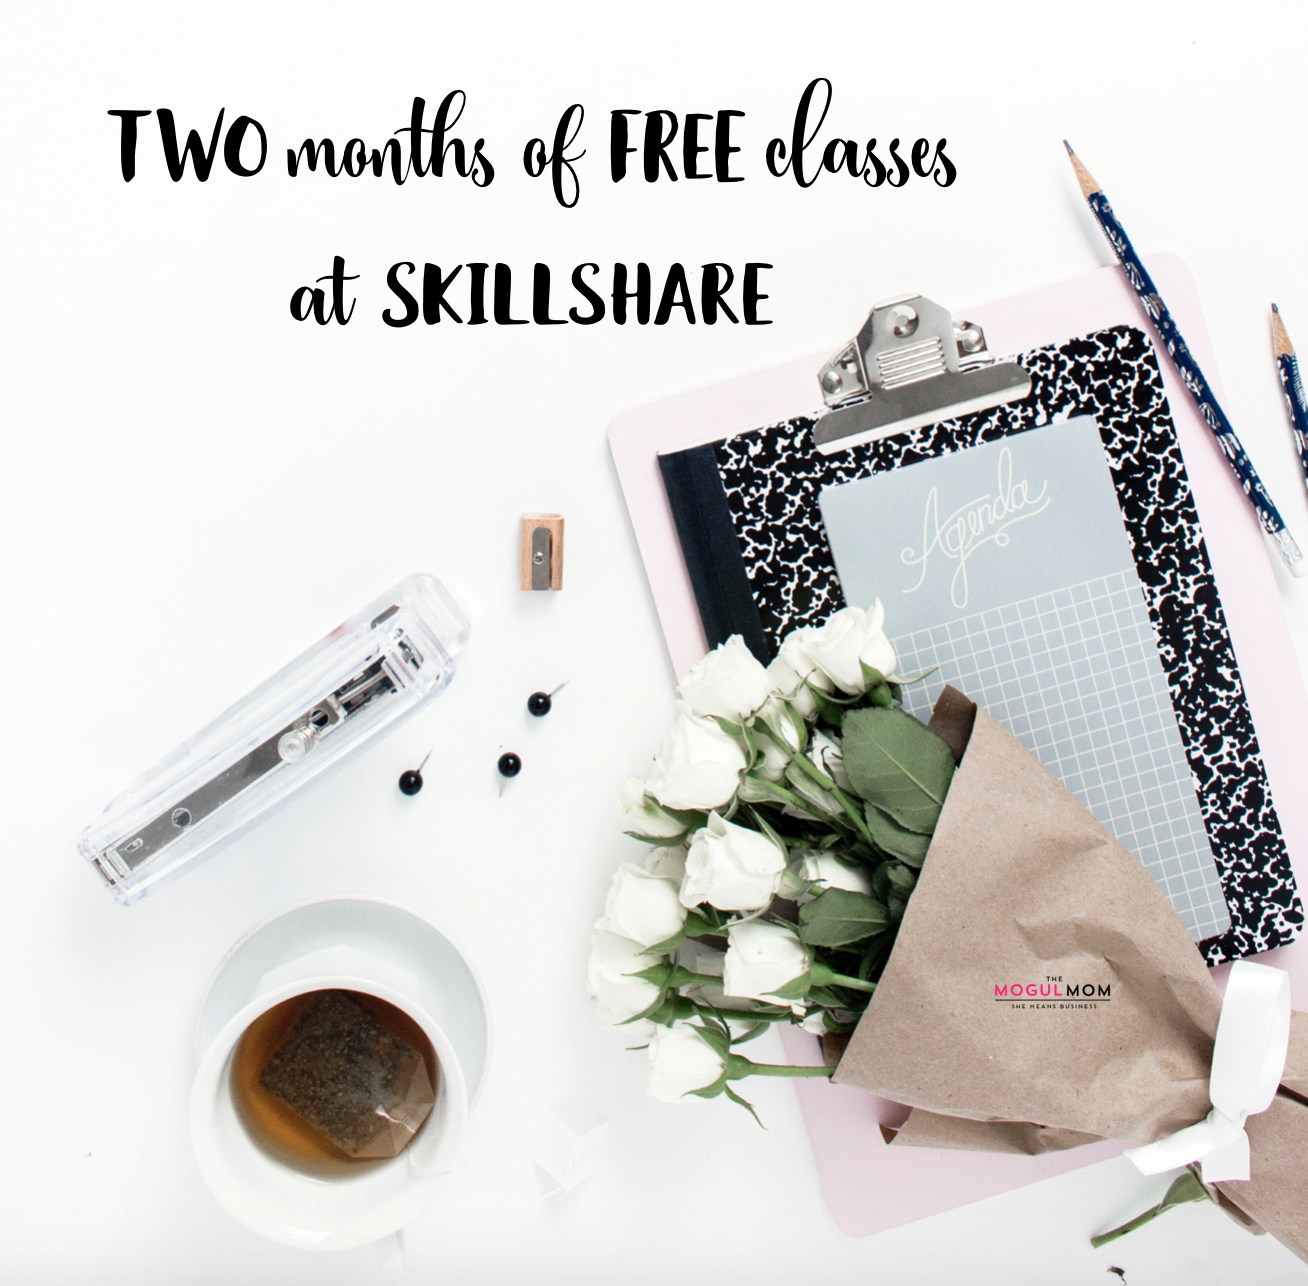 FREEBIE ALERT Skillshare has graciously offered TWO free